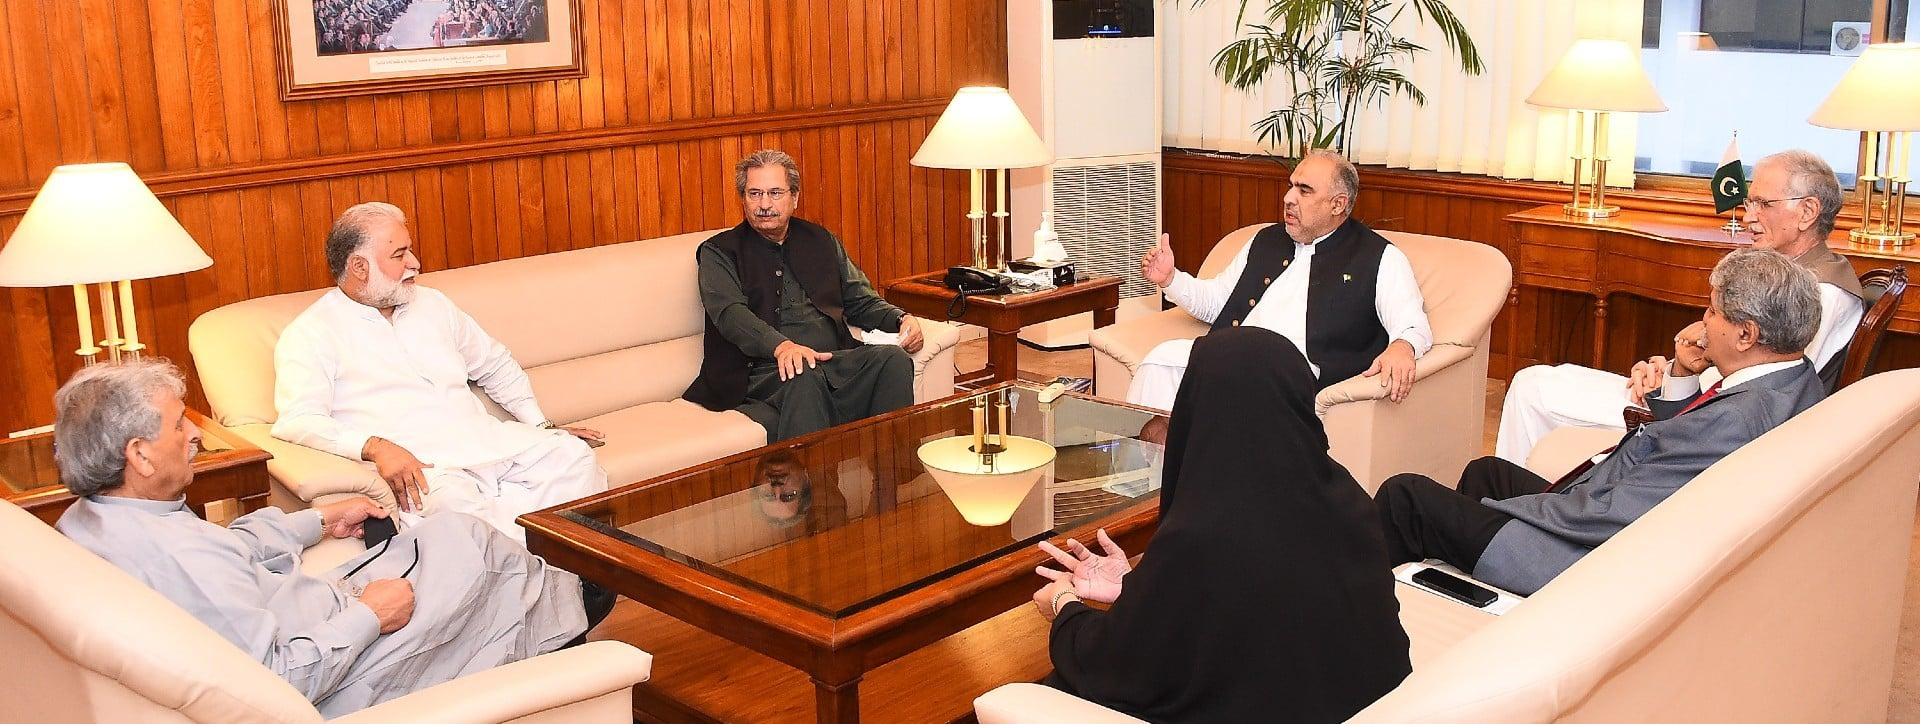 ISLAMABAD: National Assembly Speaker Asad Qaiser in a meeting with senior members of ruling and opposition parties at the Parliament House.—APP